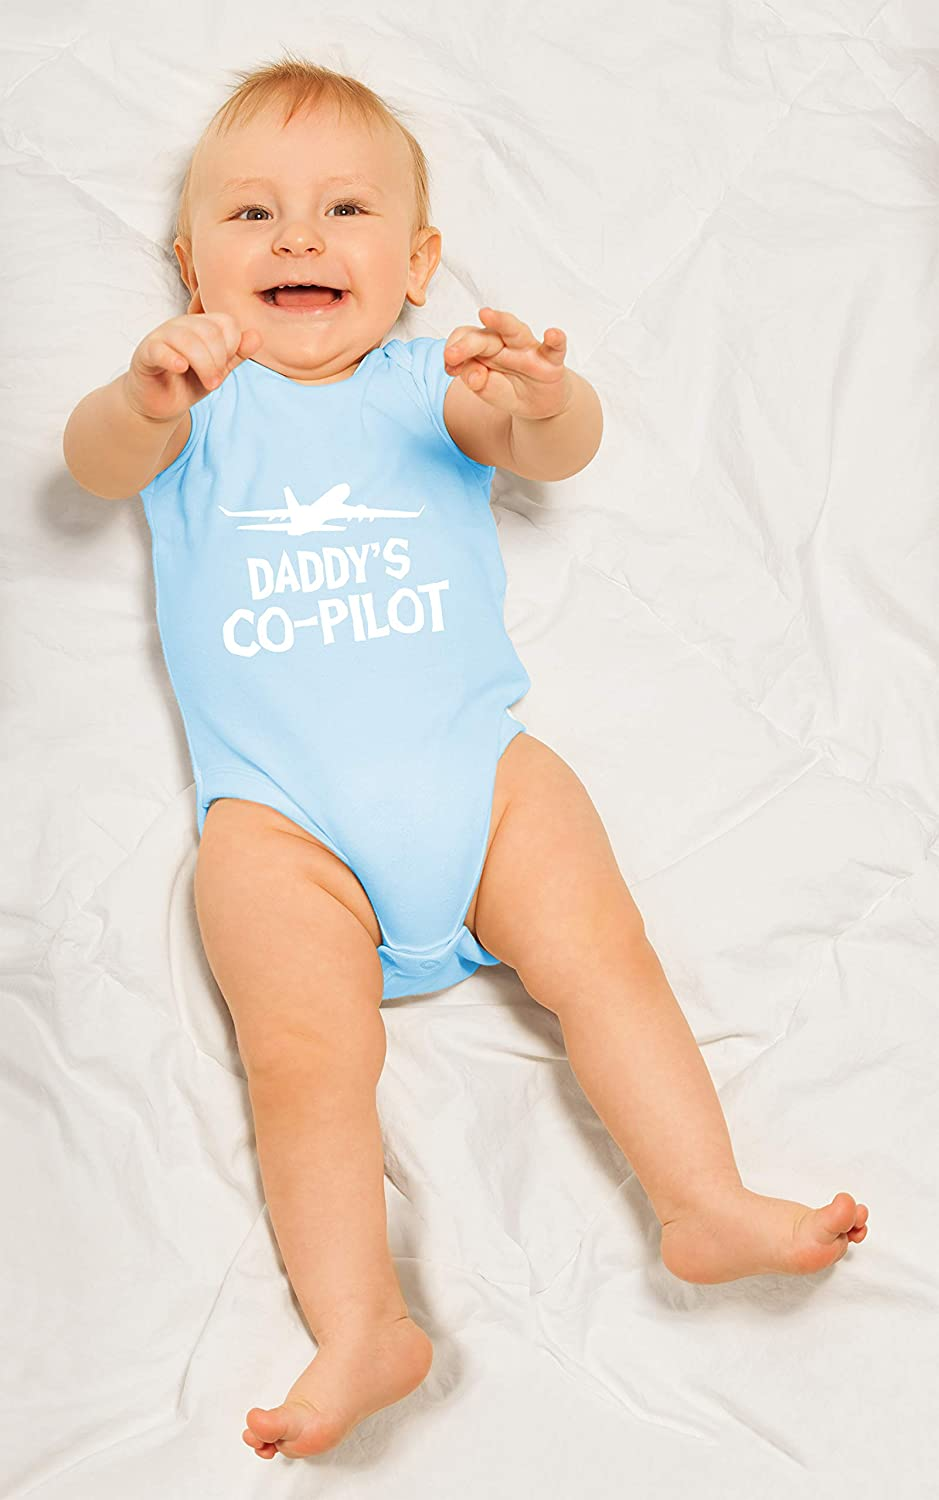 Funny Newborn Unisex Baby Cotton Bodysuit Infant One-Piece Romper Outfit Daddys Co-Pilot